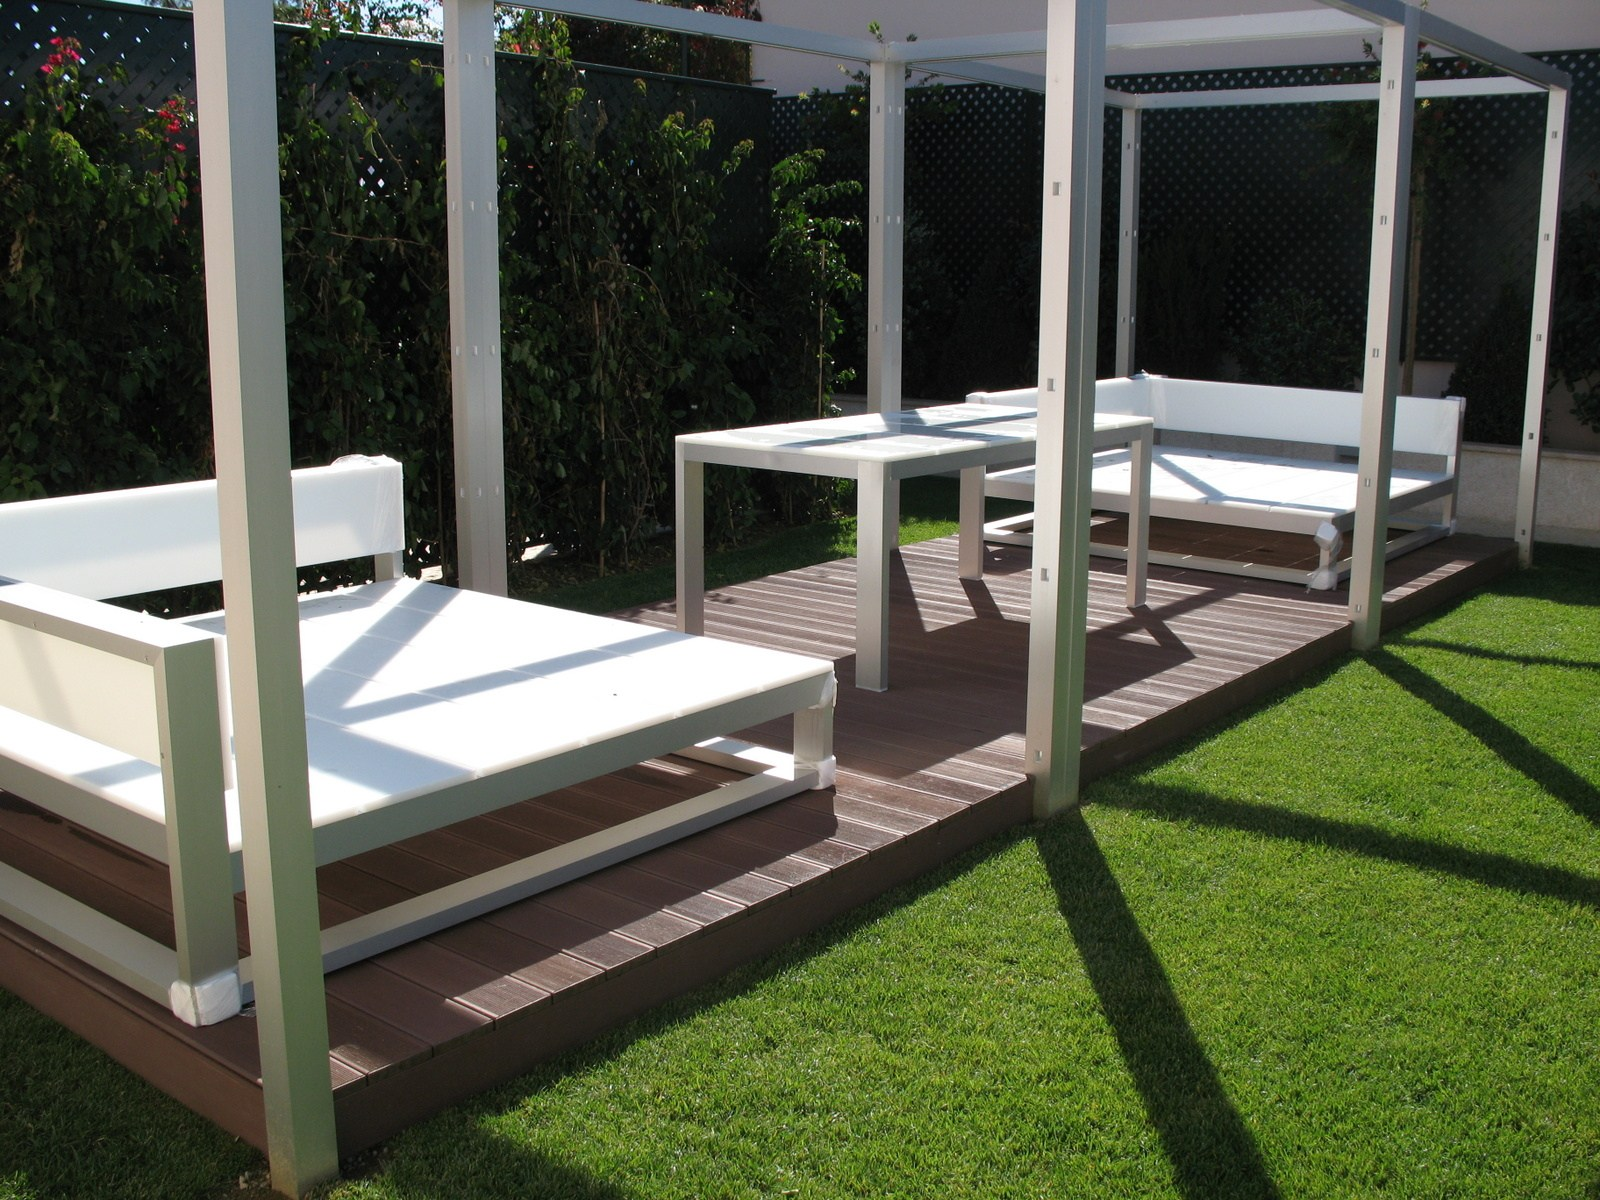 Pergola and handrail system in WPC